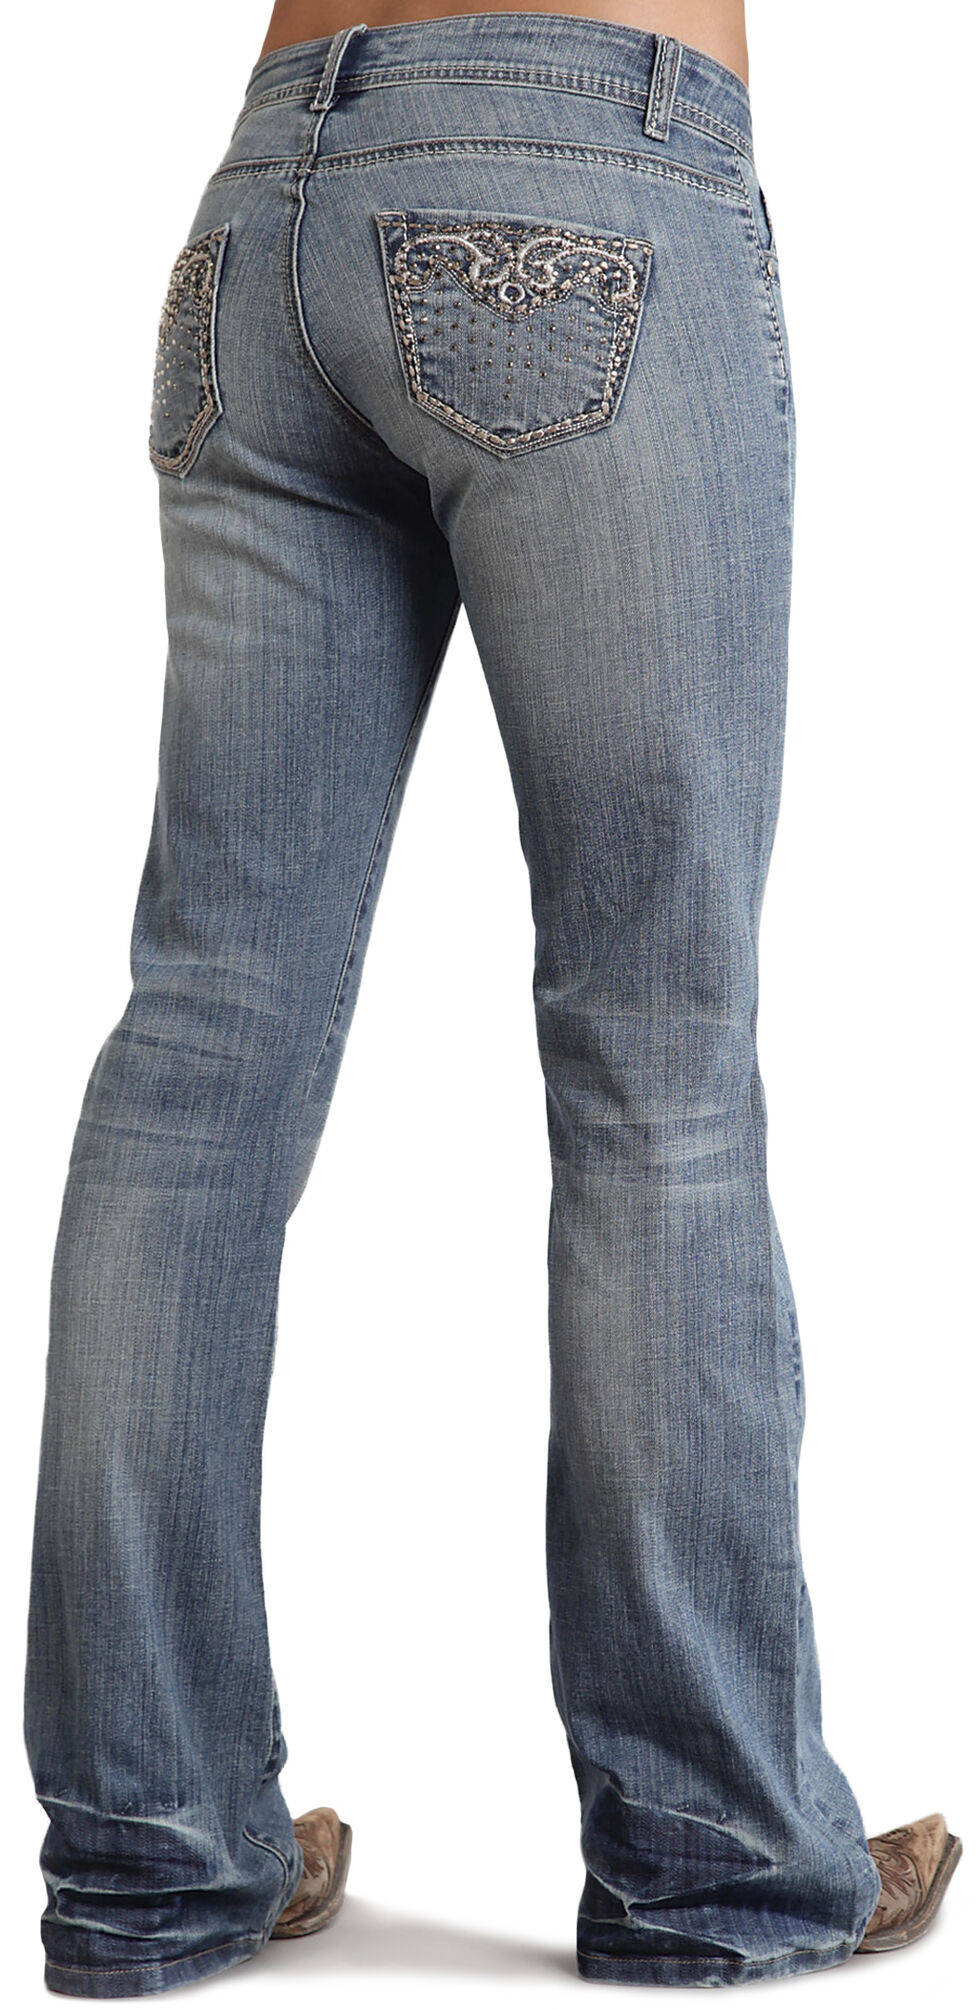 Stetson Women's 816 Fit Distressed Embellished Boot Cut Jeans, Denim, hi-res